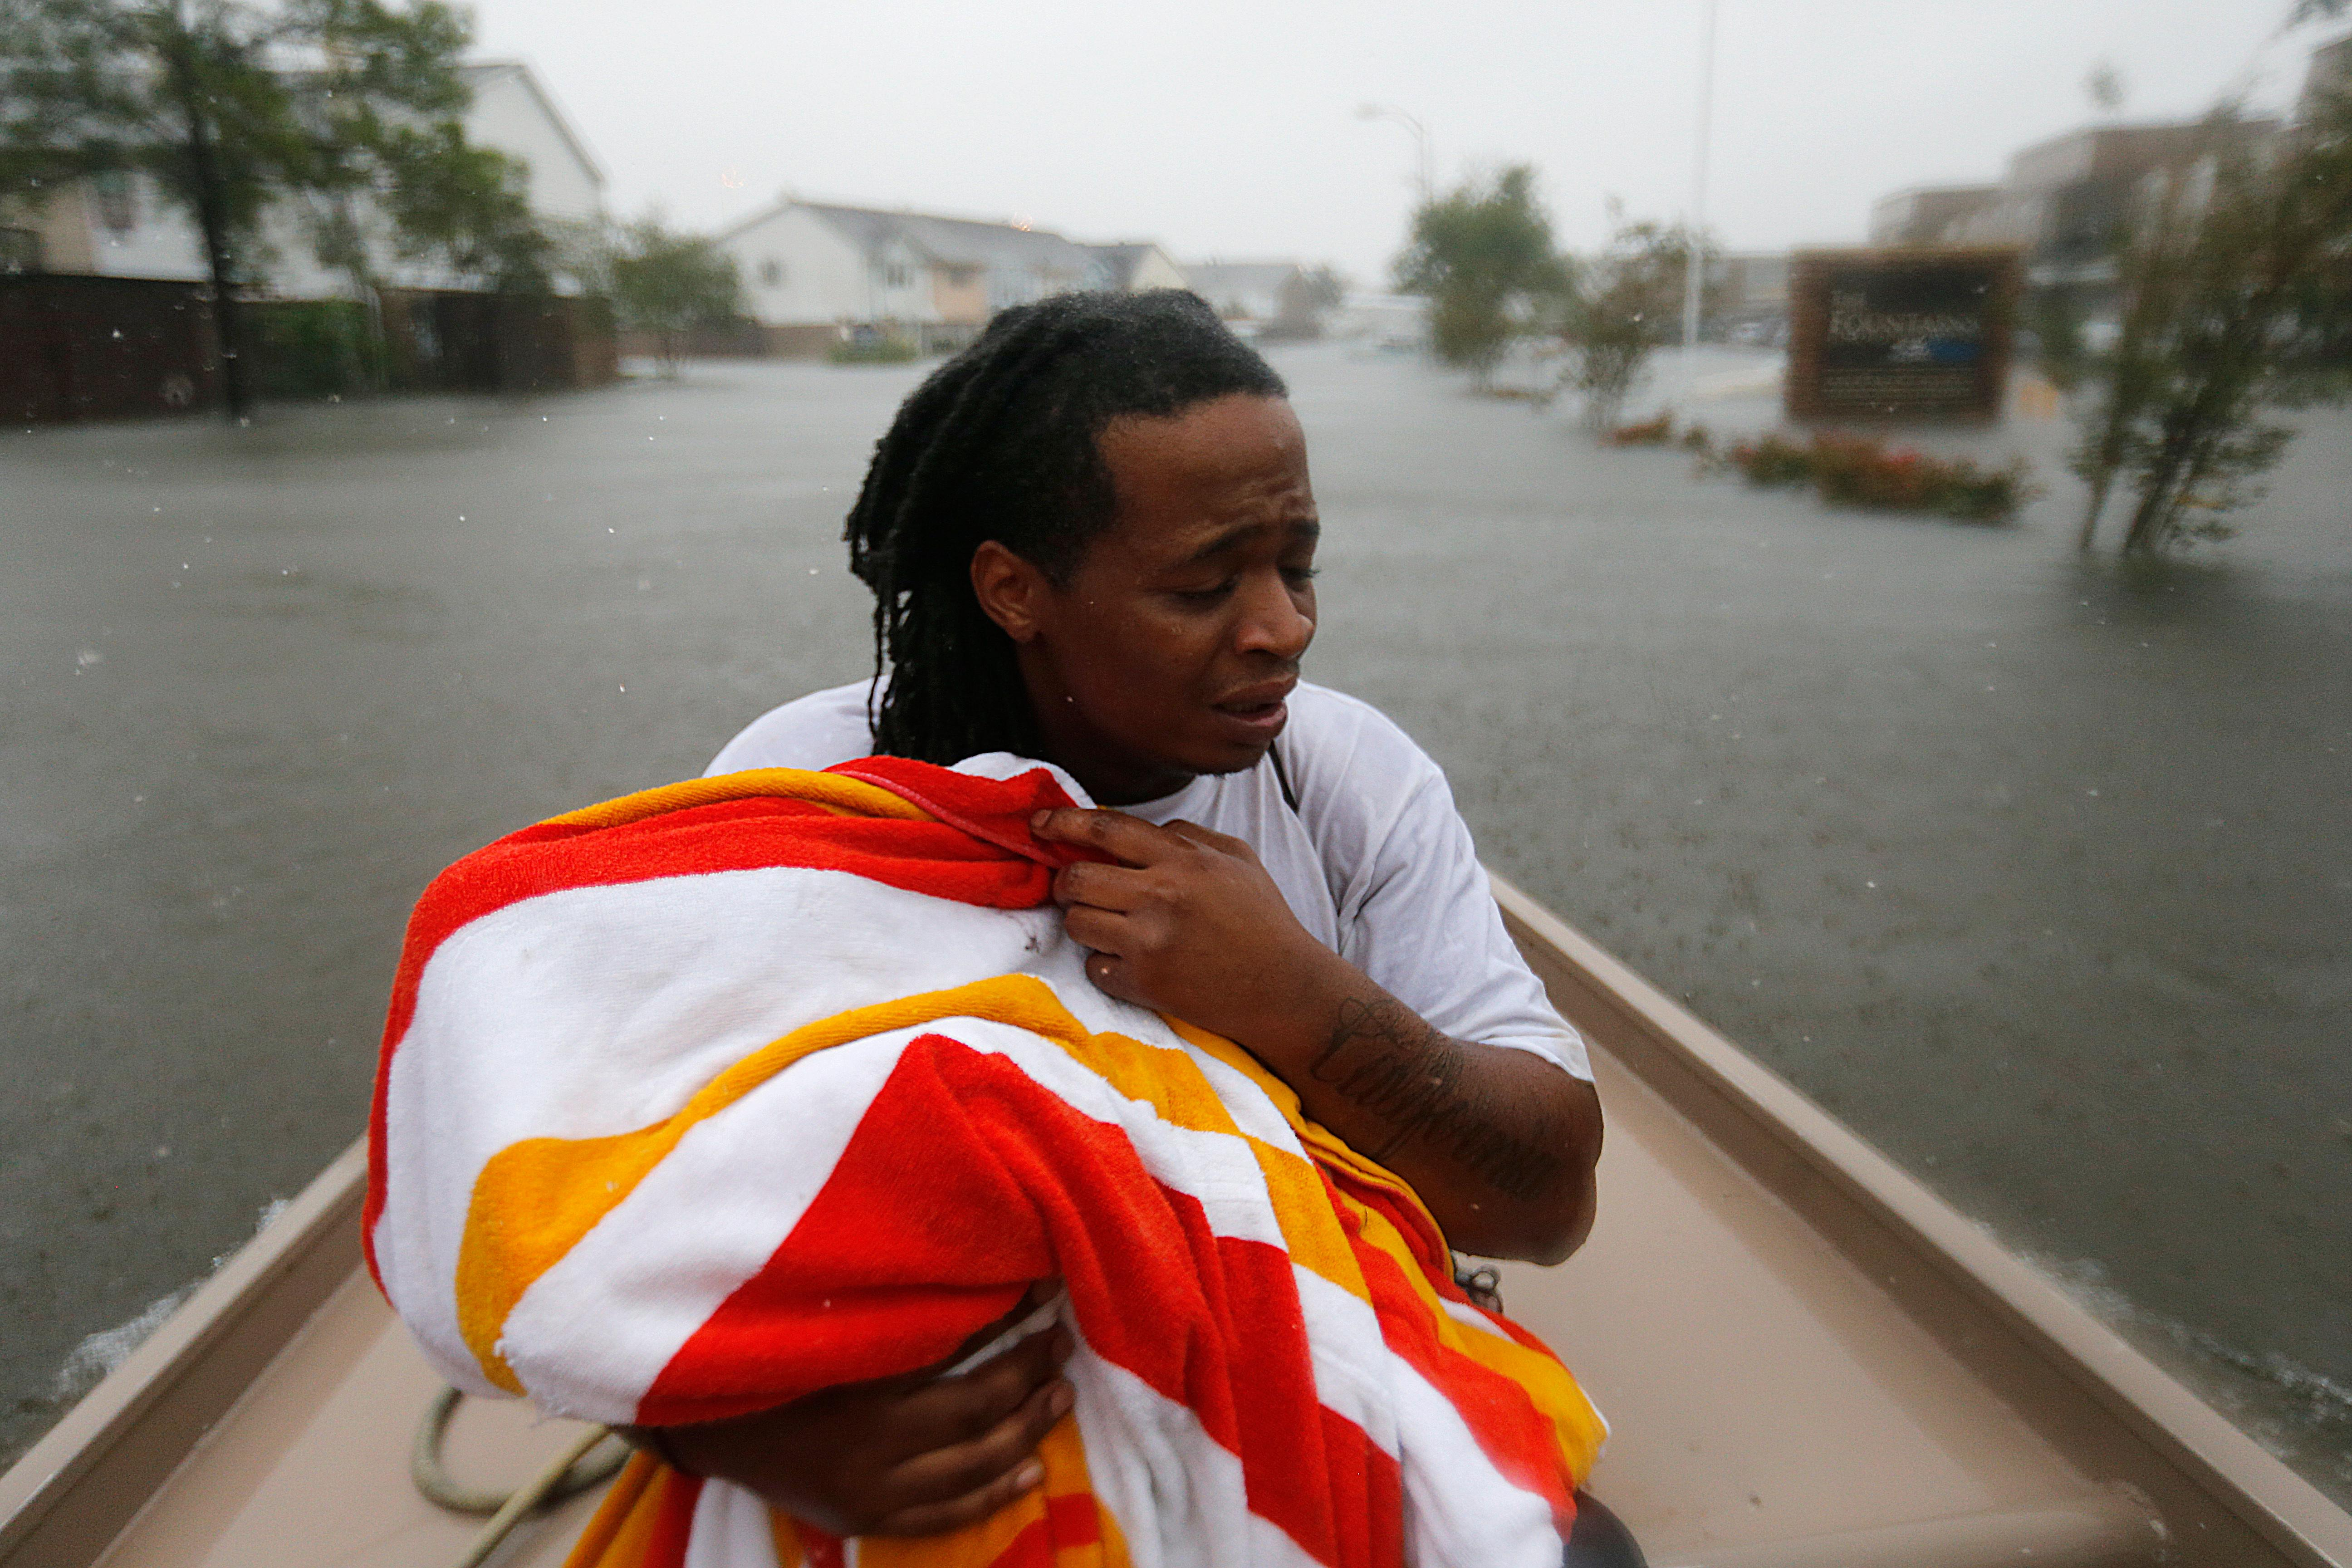 Demetres Fair holds a towel over his daughter Damouri Fair, 2, as they are rescued by boat by members of the Louisiana Department of Wildlife and Fisheries and the Houston Fire Department during flooding from Tropical Storm Harvey in Houston, Monday, Aug. 28, 2017. (AP Photo/Gerald Herbert)